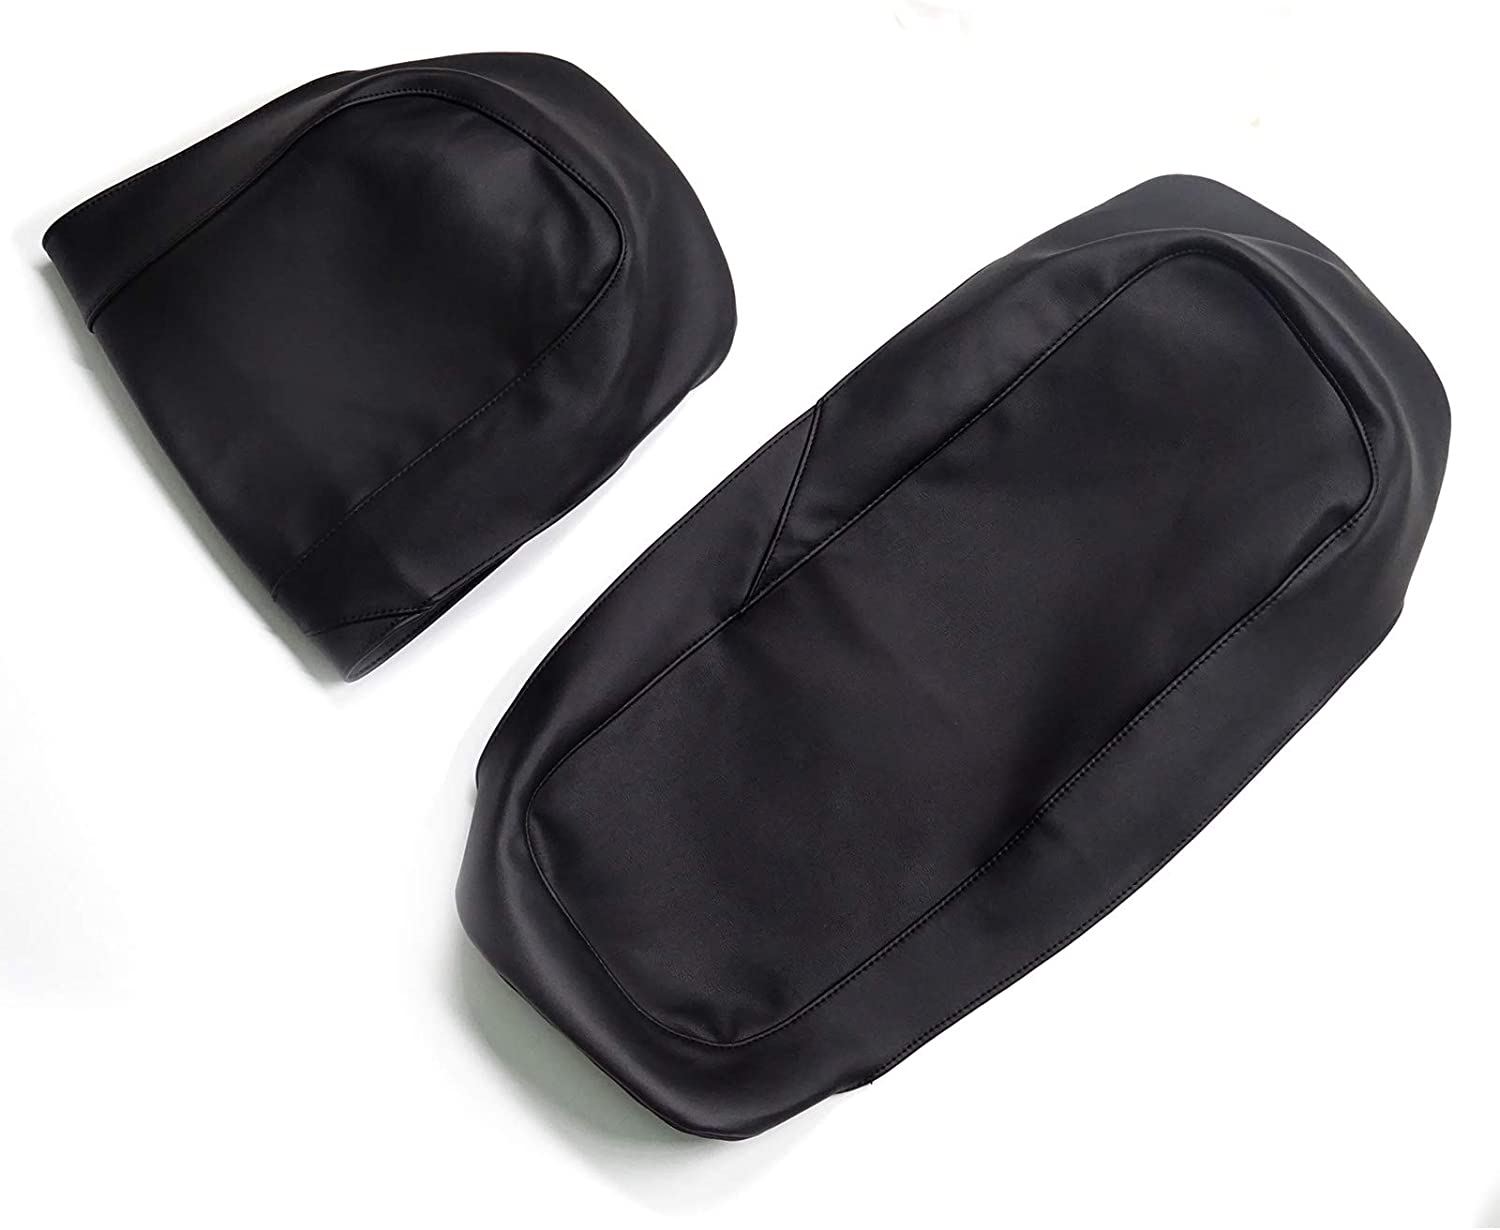 XJMOTO Saddlebag Speaker Lid Protect Cover PU Leather Waterproof for 1993-2013 Harley Touring Models Electra Glides Road Glides Road Kings Street Glides